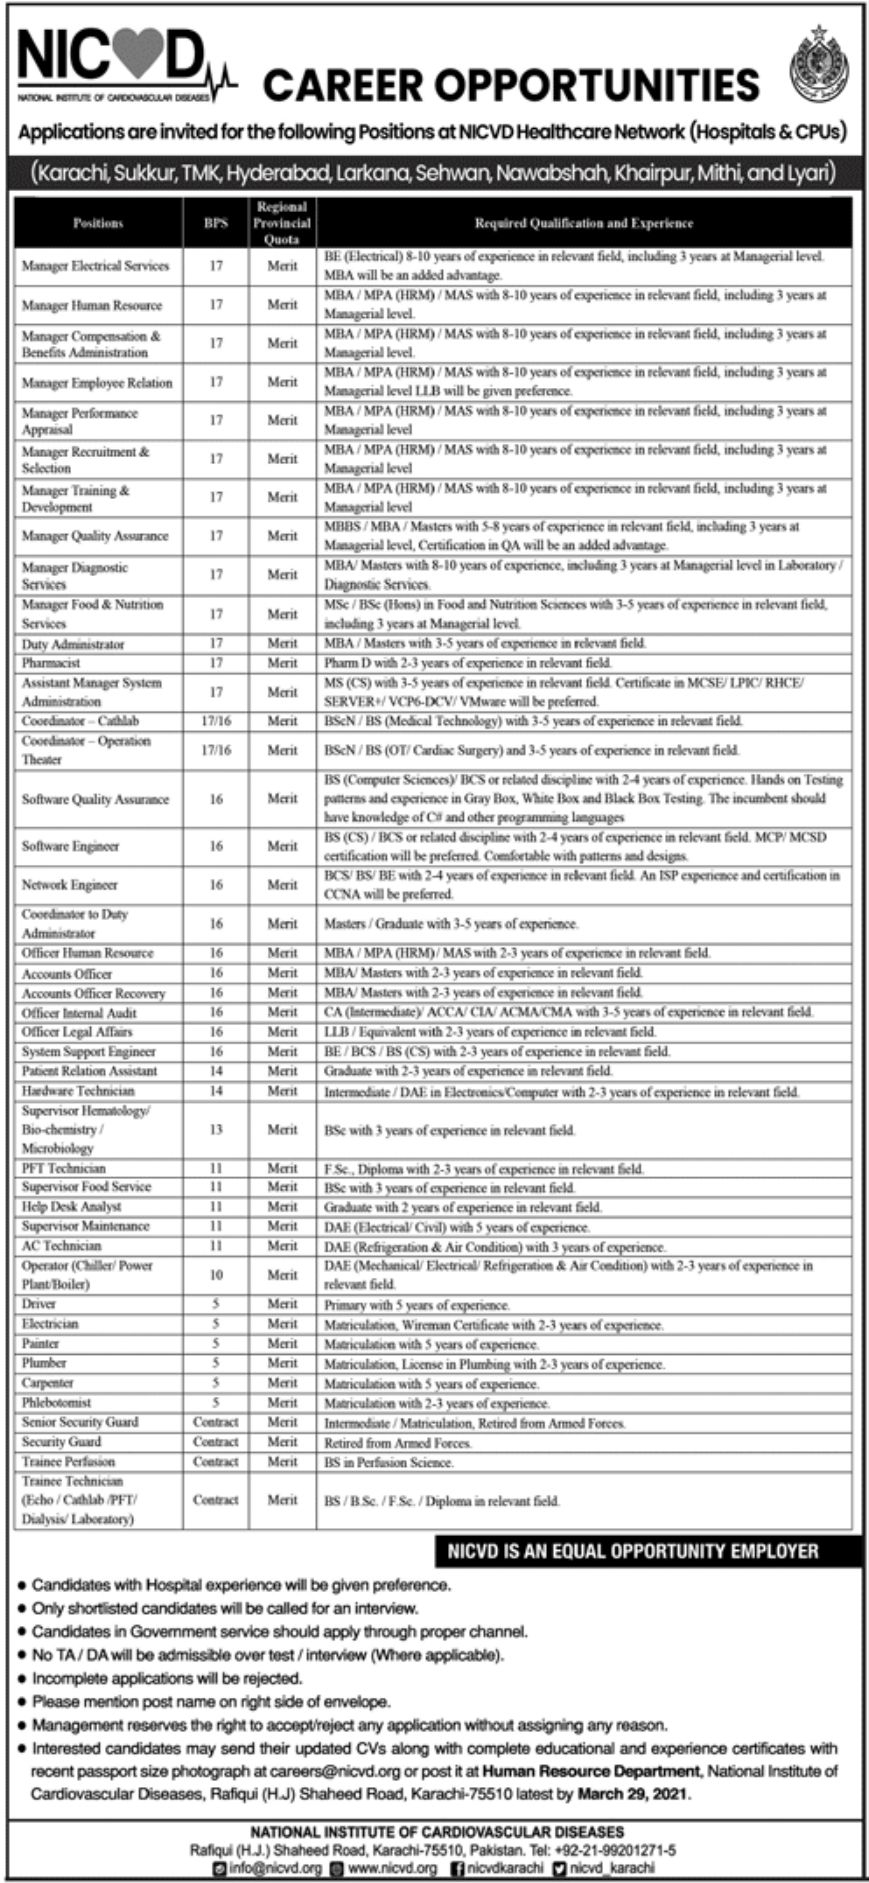 government,national institute of cardiovascular diseases nicvd karachi,manager, administrator, pharmacist, coordinator, professor, program manager, staff nurse, software quality assurance, software engineer, network engineer, officer human resource, and many more,latest jobs,last date,requirements,application form,how to apply, jobs 2021,